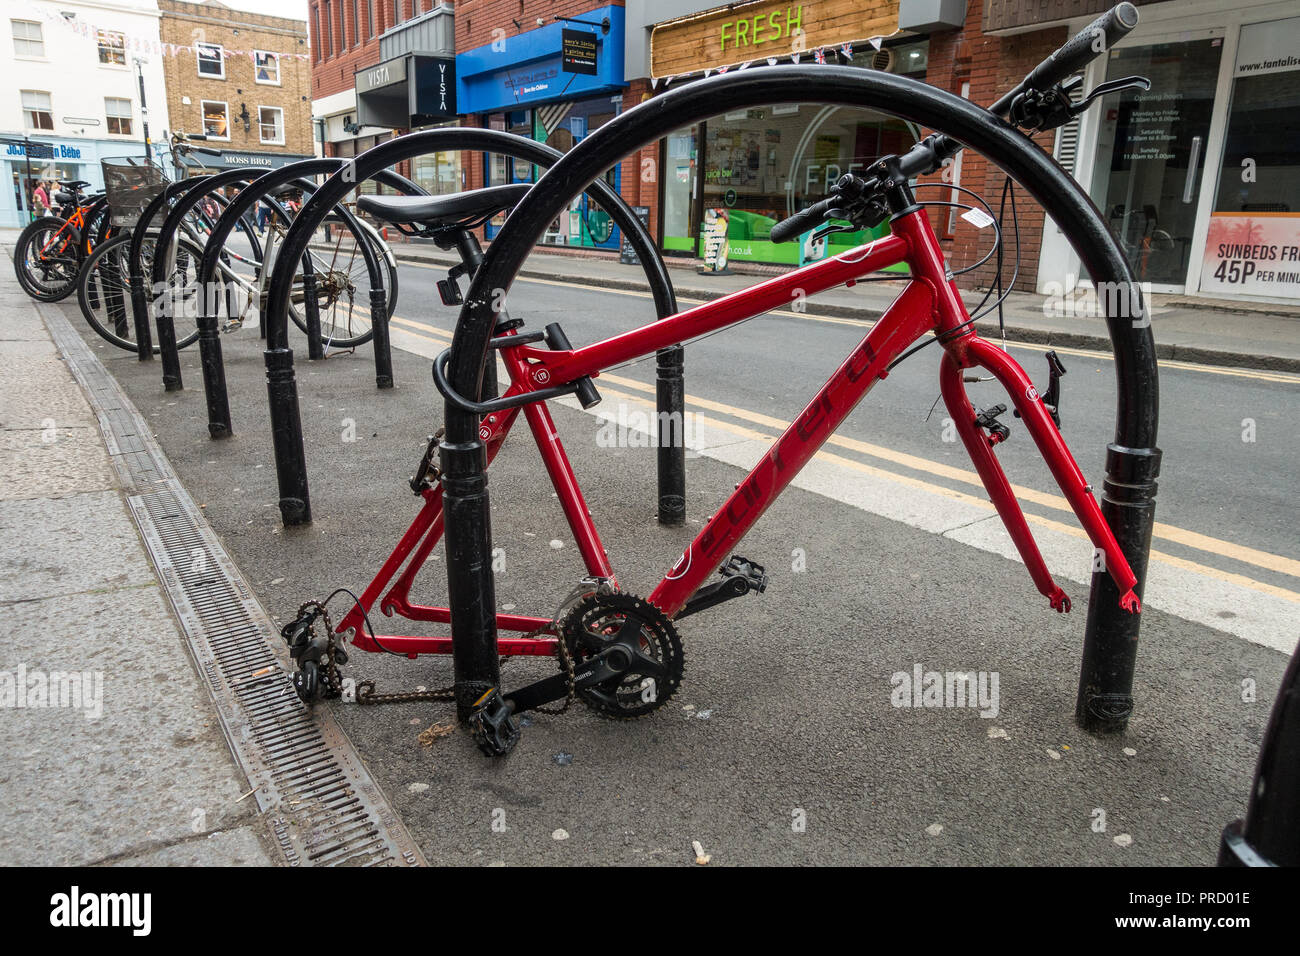 a bicycle which is locked up to a bike rack in windsor has had it s wheels stolen in an act of petty crime the bike frame is left abandoned stock photo https www alamy com a bicycle which is locked up to a bike rack in windsor has had its wheels stolen in an act of petty crime the bike frame is left abandoned image220946922 html